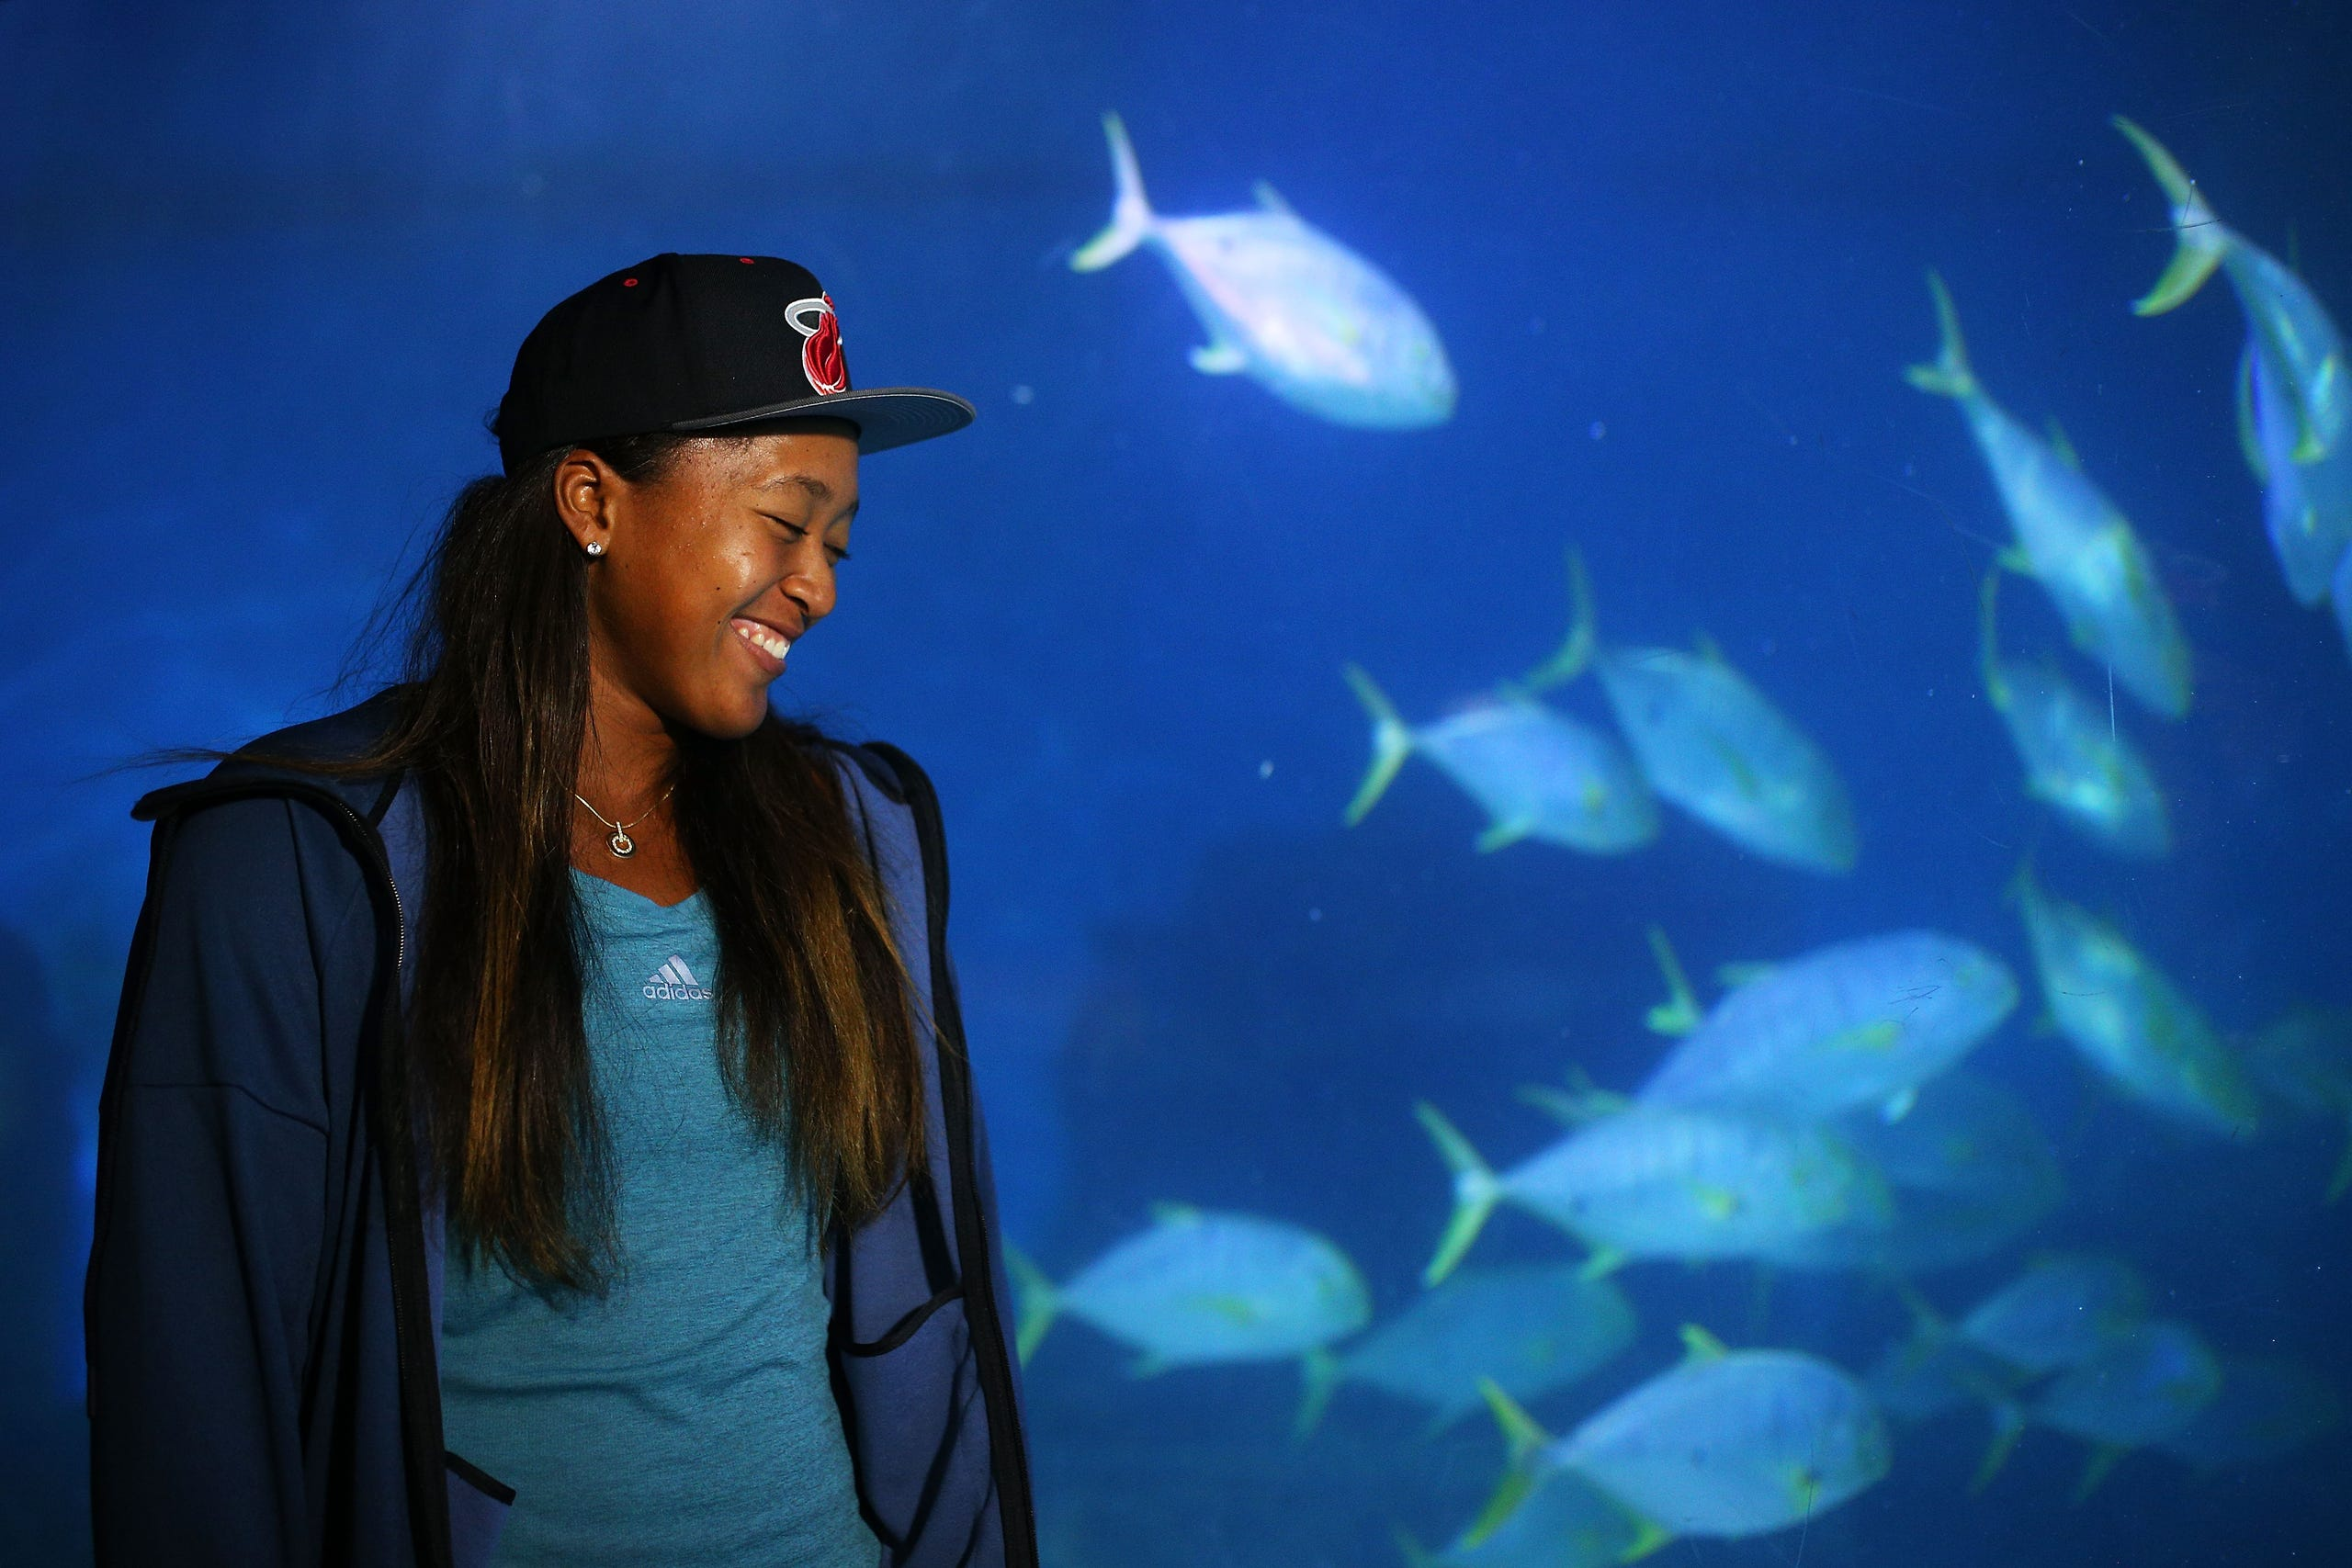 Naomi Osaka smiles as she visits Melbourne Aquarium during day three of the 2016 Australian Open at Melbourne Park on January 20, 2016 in Melbourne, Australia.